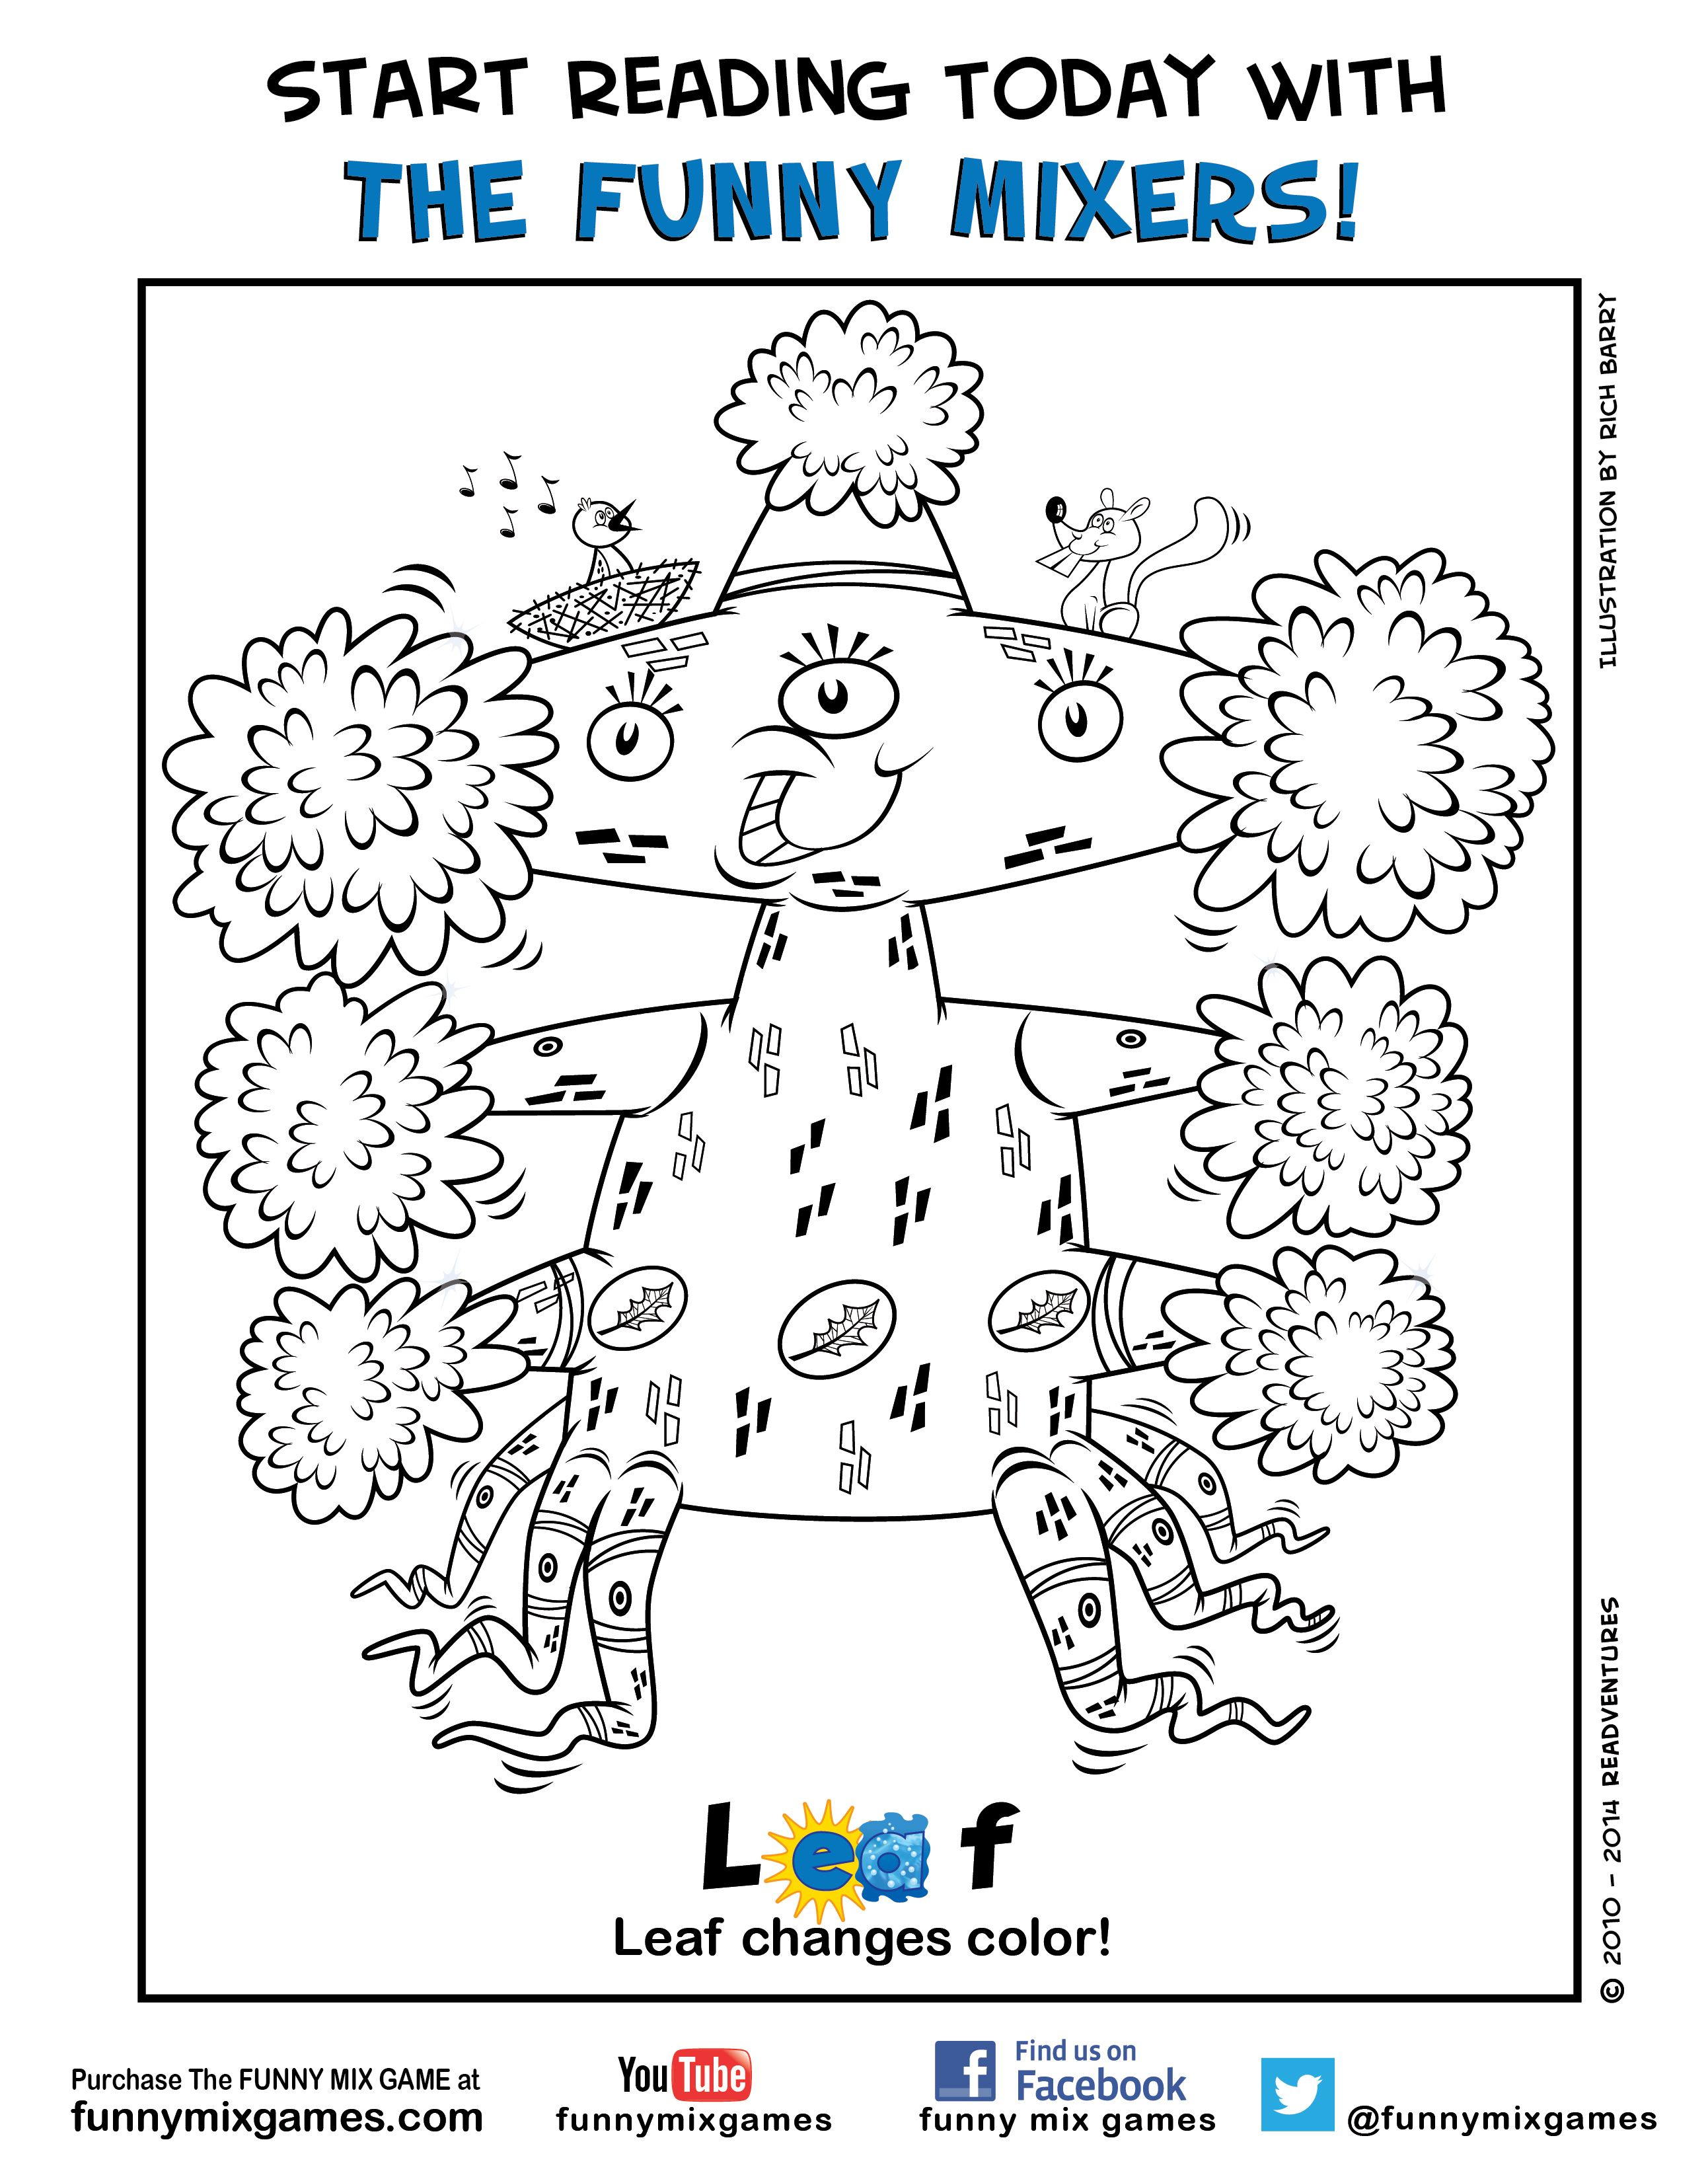 Coloring interactive games - Childrens Interactive Coloring Pages Funny Mix Game Coloring Page Character Leaf Please Share Your Children